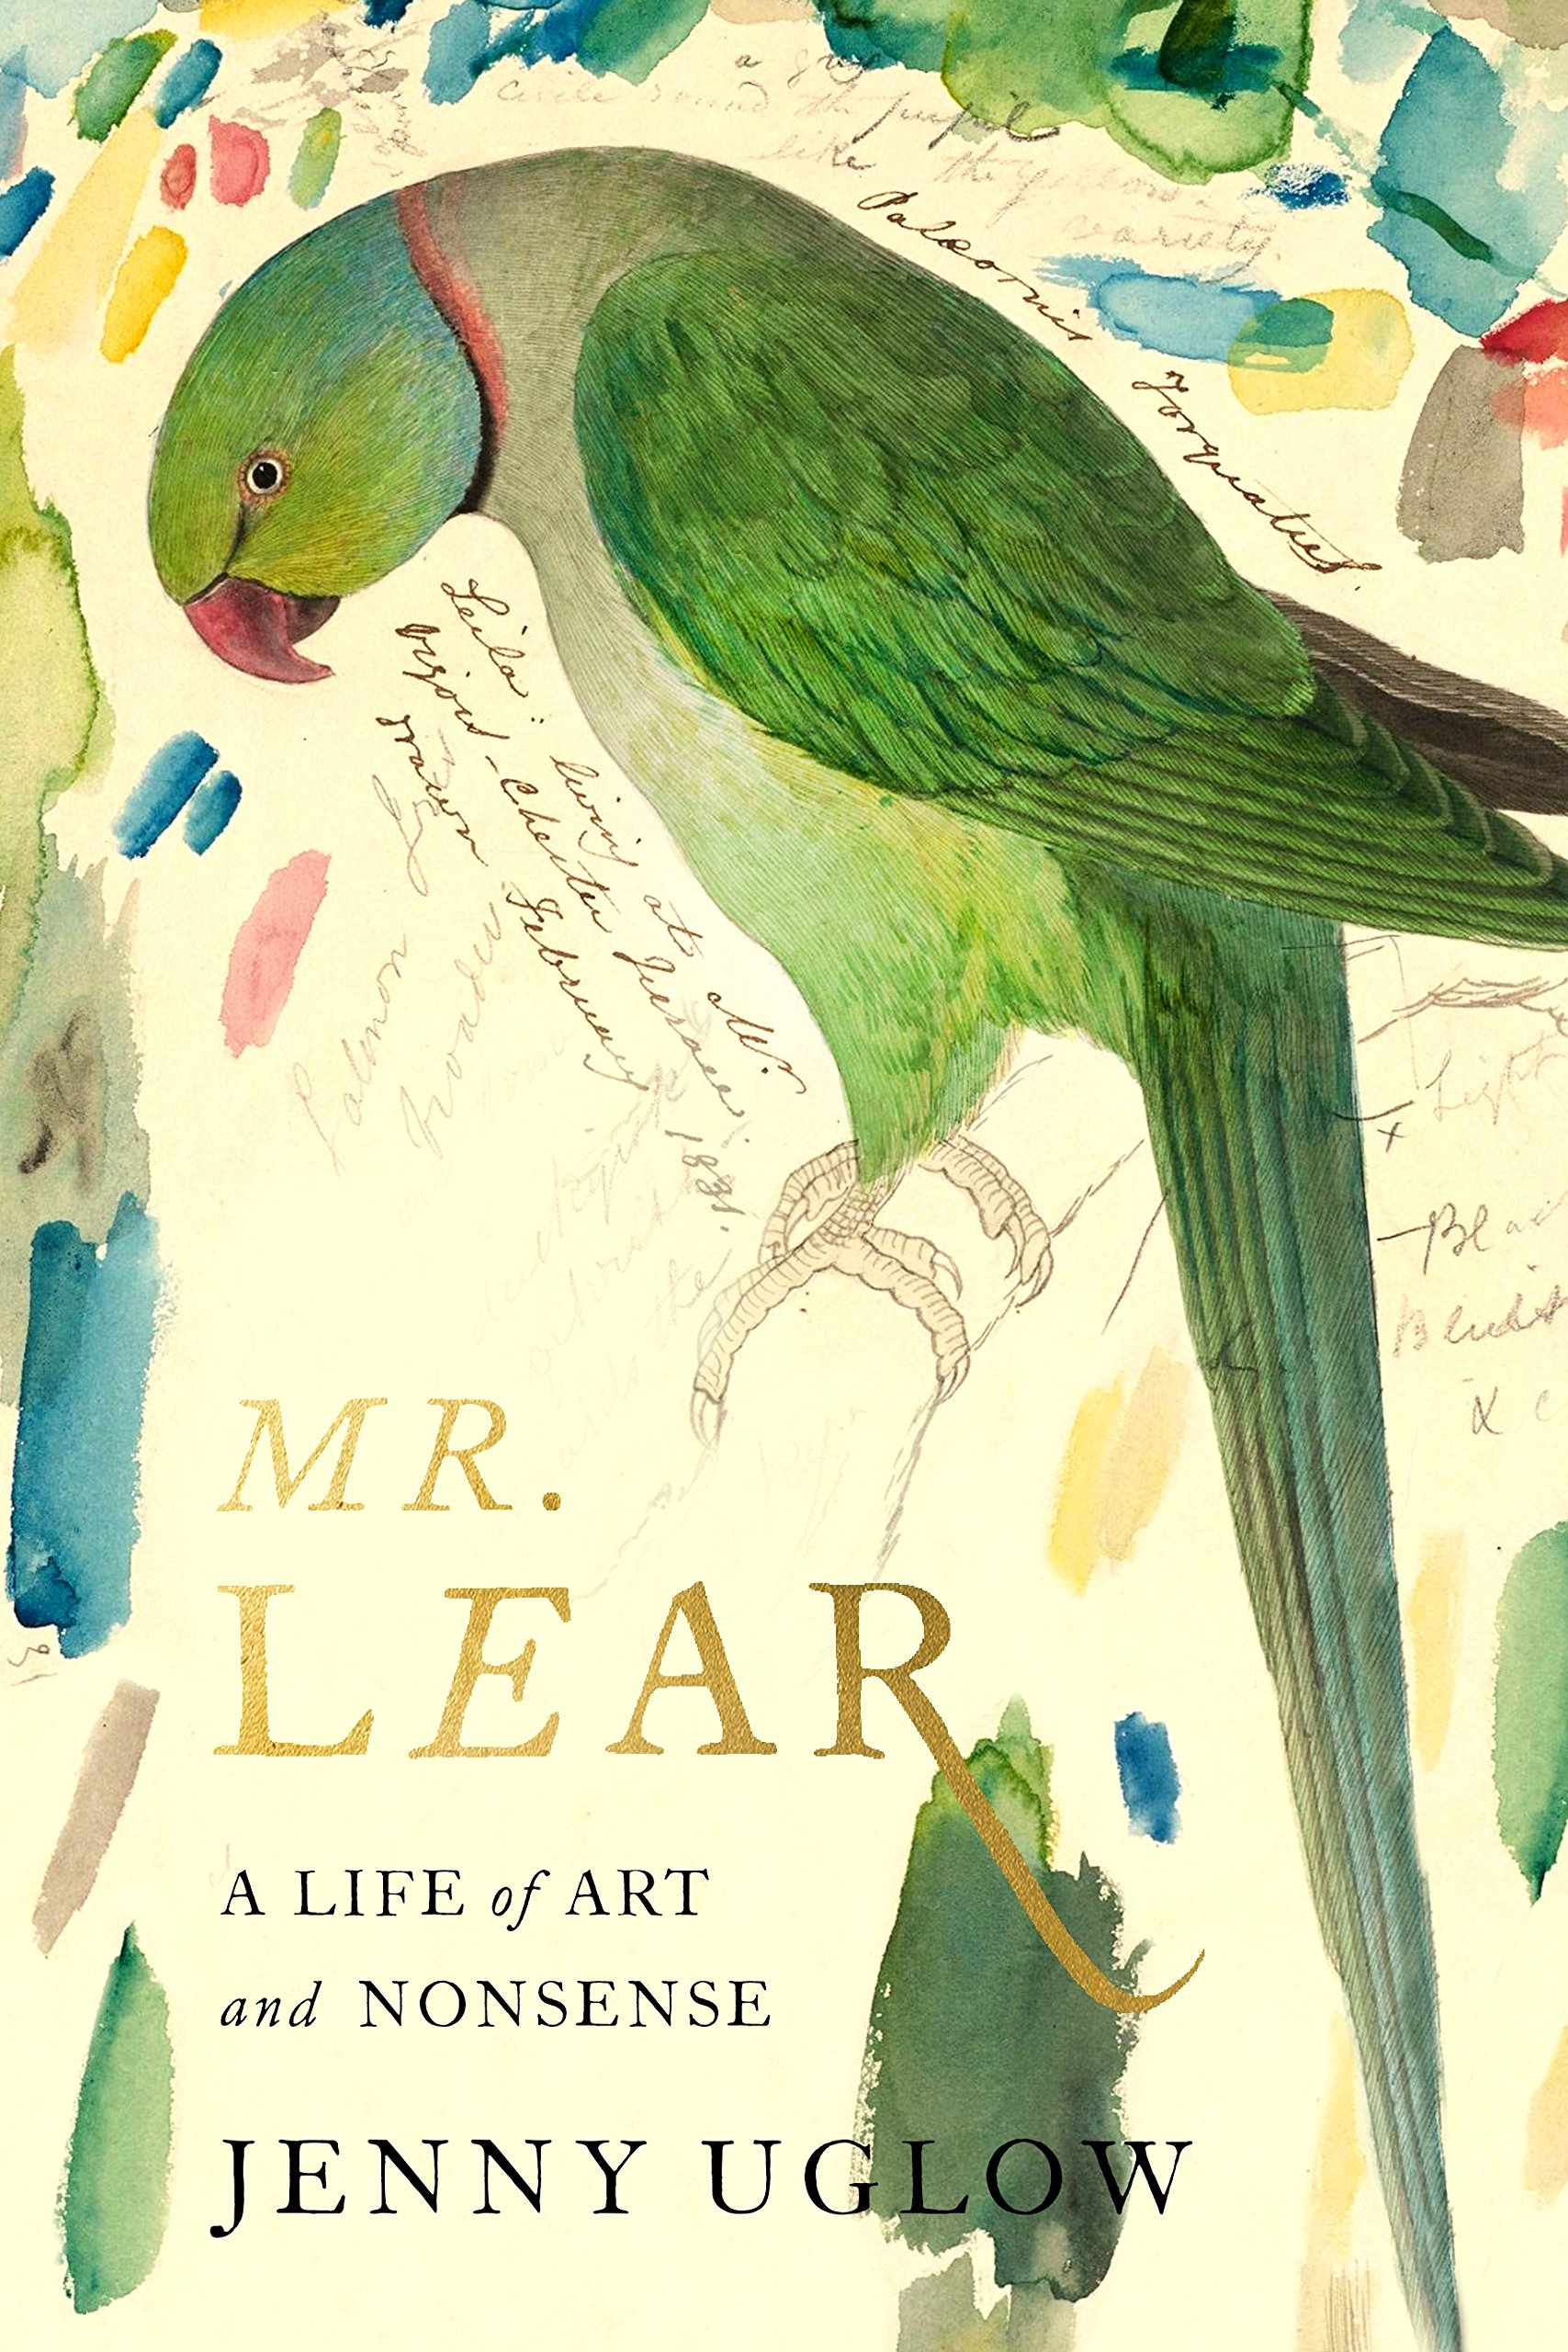 Mr. Lear a Life of Art and Nonsense By Jenny Uglow Book Cover